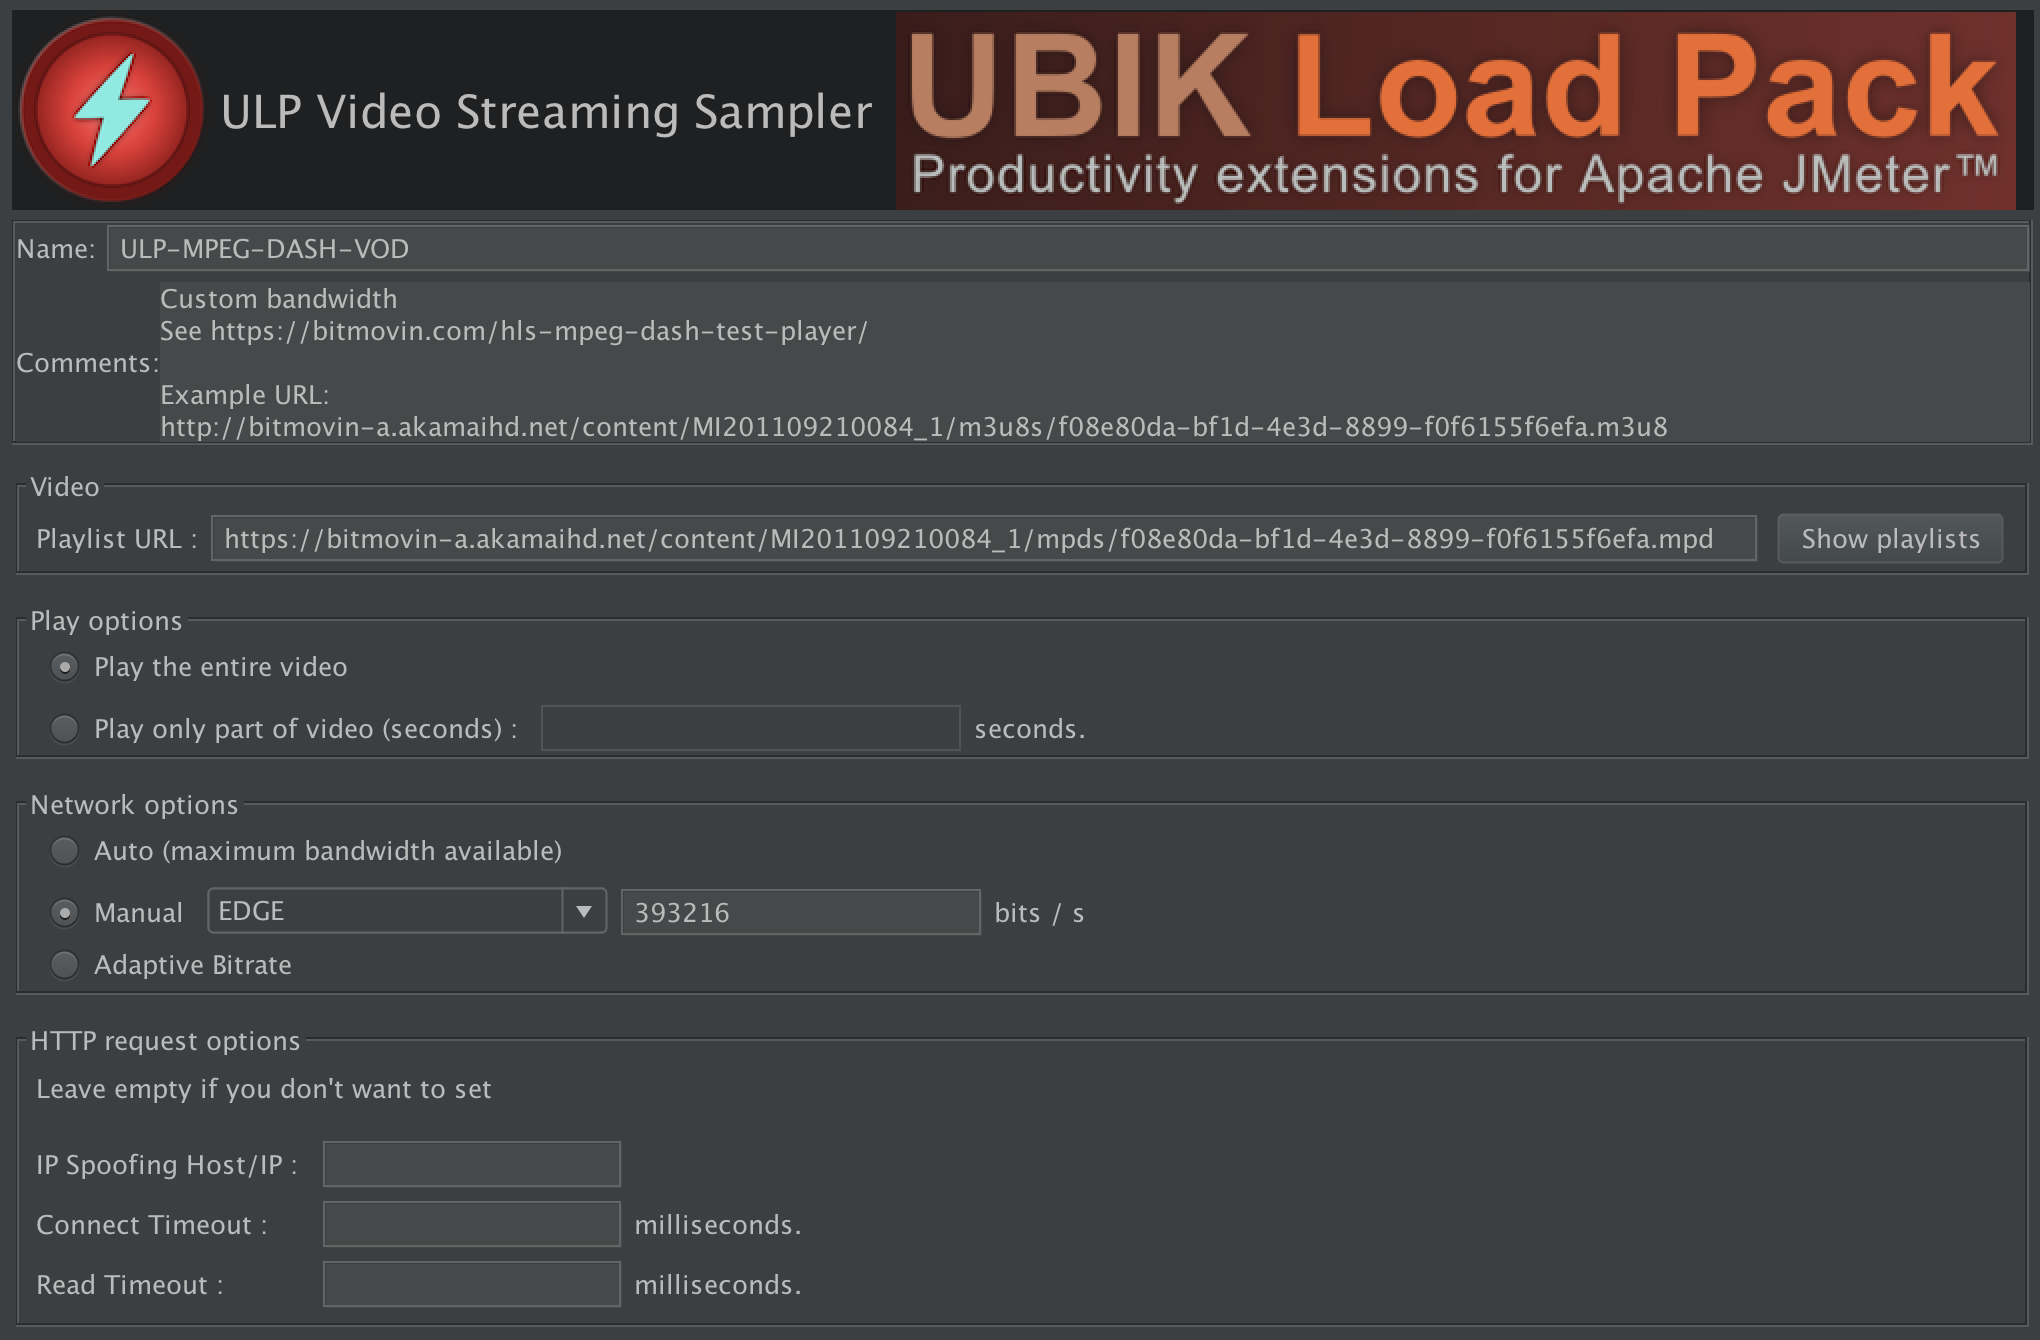 UbikLoadPack Video Streaming Plugin 6.1.0 for Apache JMeter